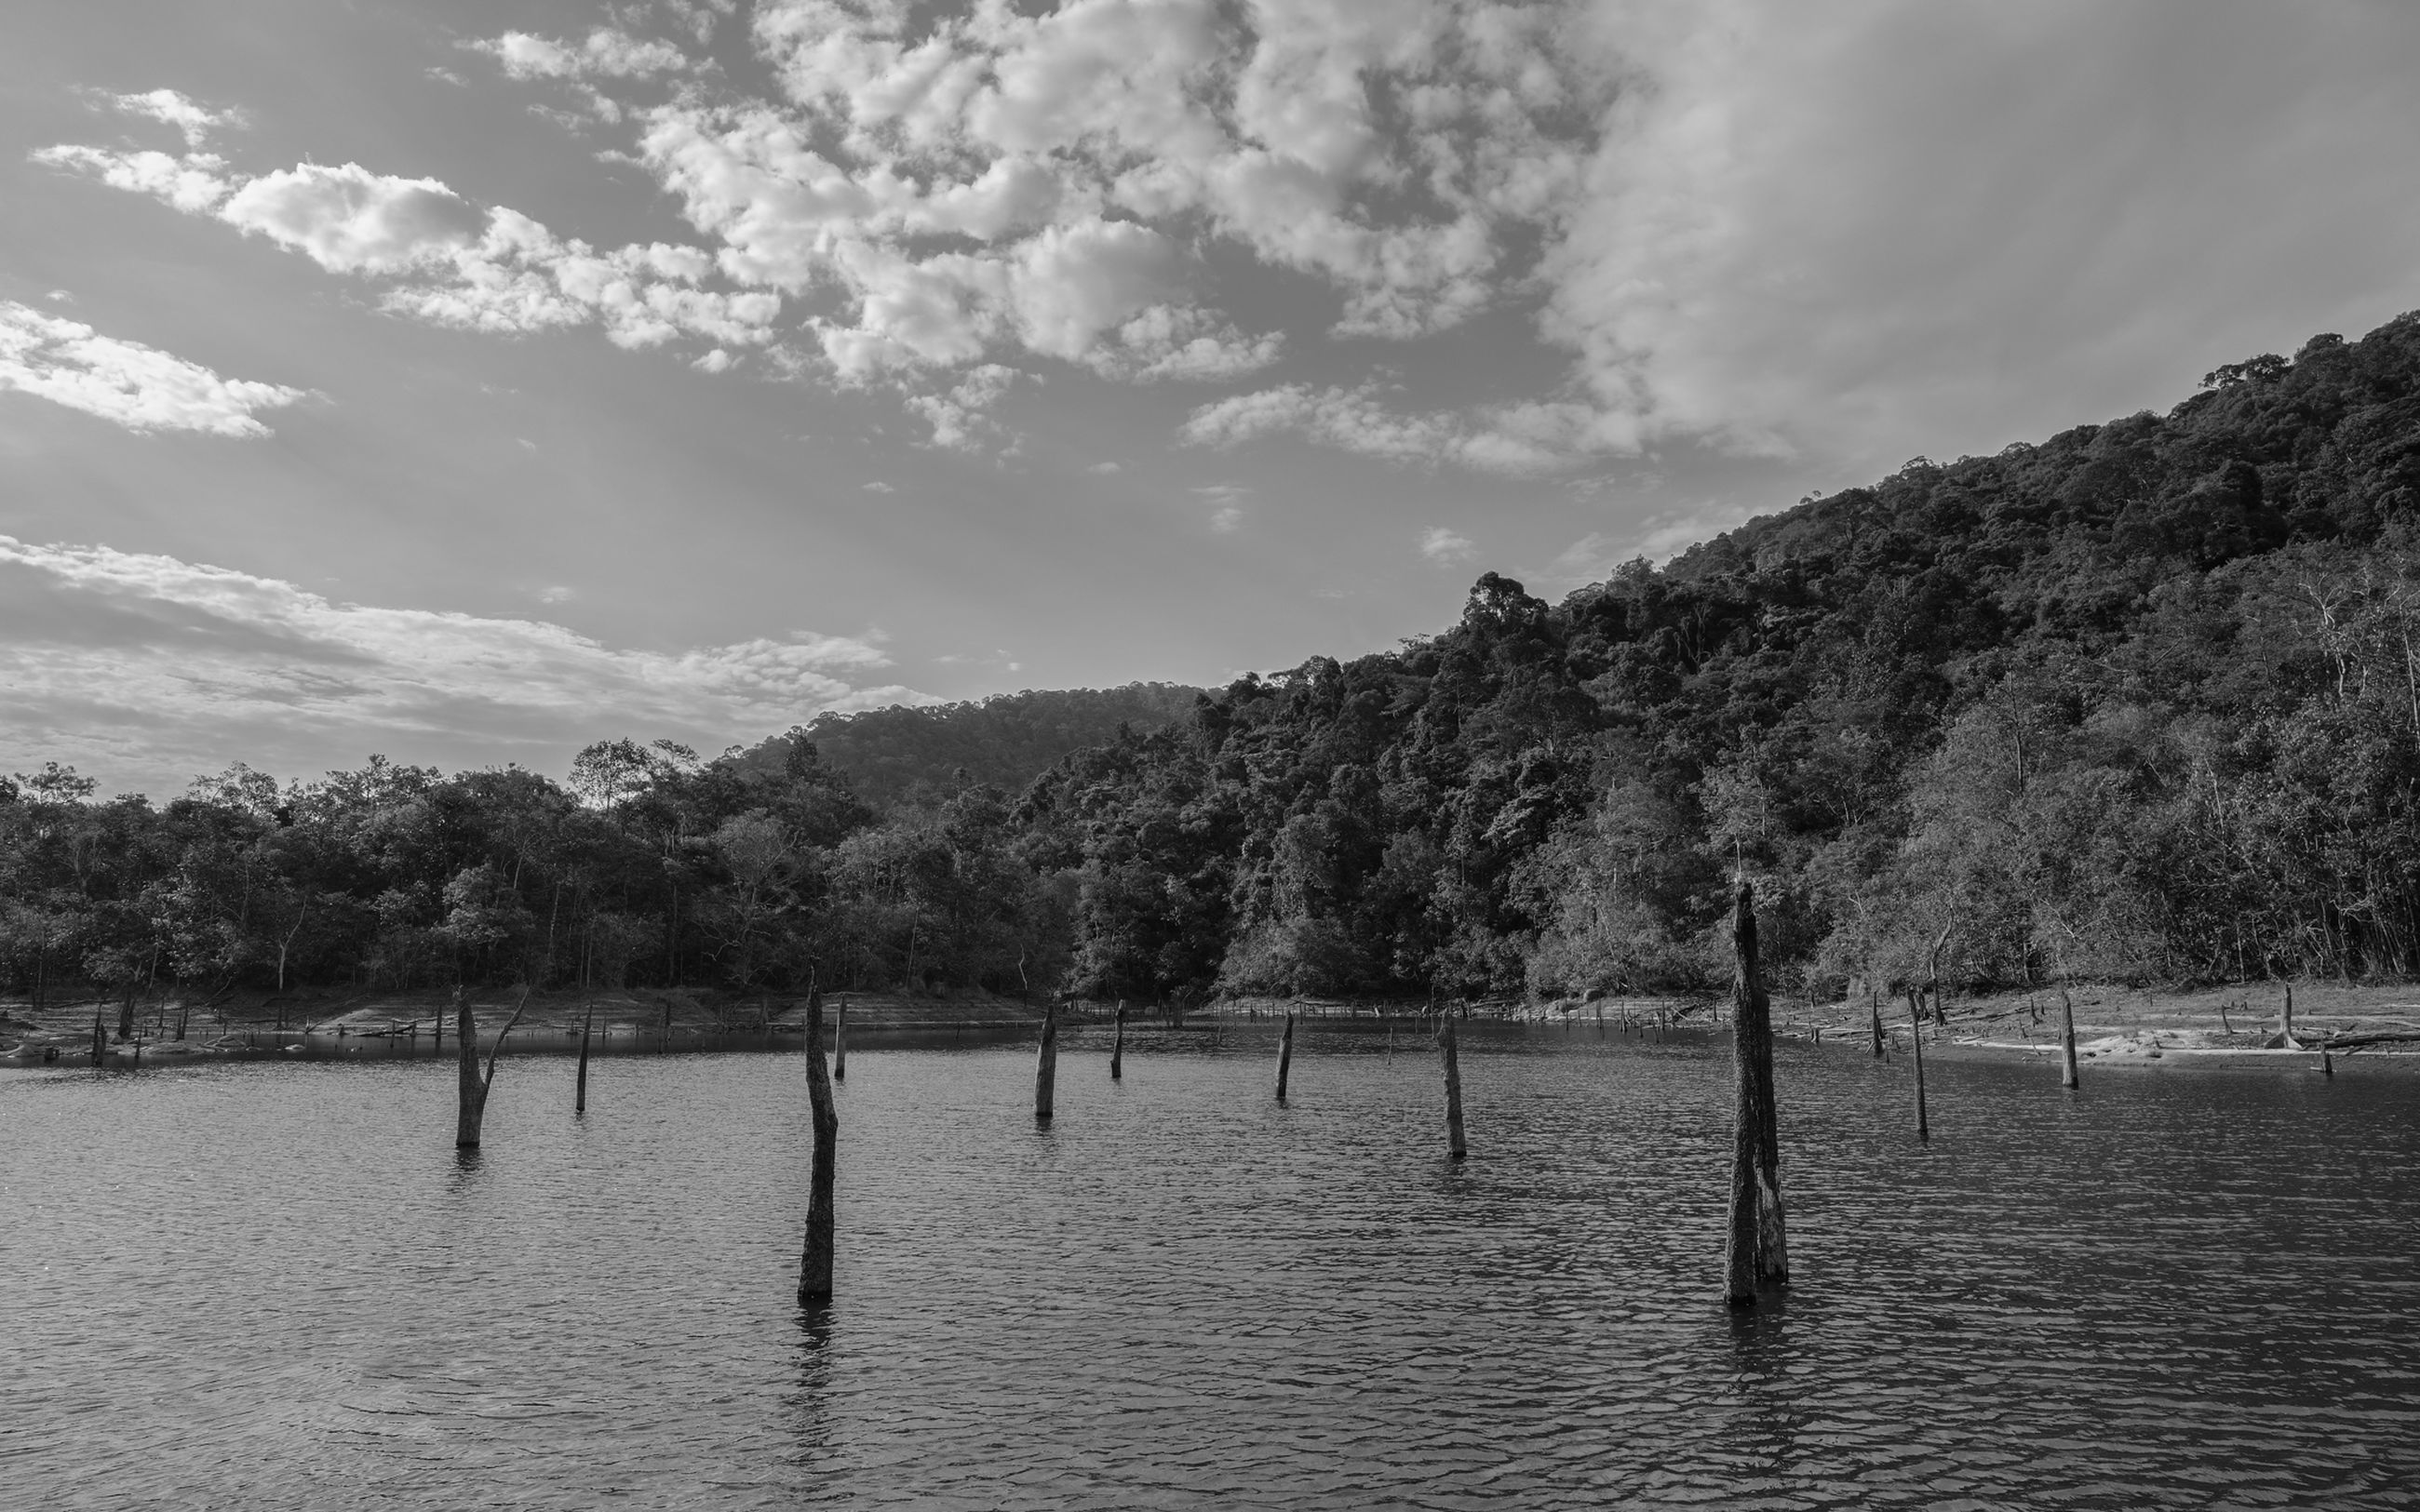 water, sky, cloud - sky, waterfront, scenics - nature, tree, beauty in nature, tranquil scene, tranquility, nature, day, plant, non-urban scene, no people, mountain, lake, post, wooden post, outdoors